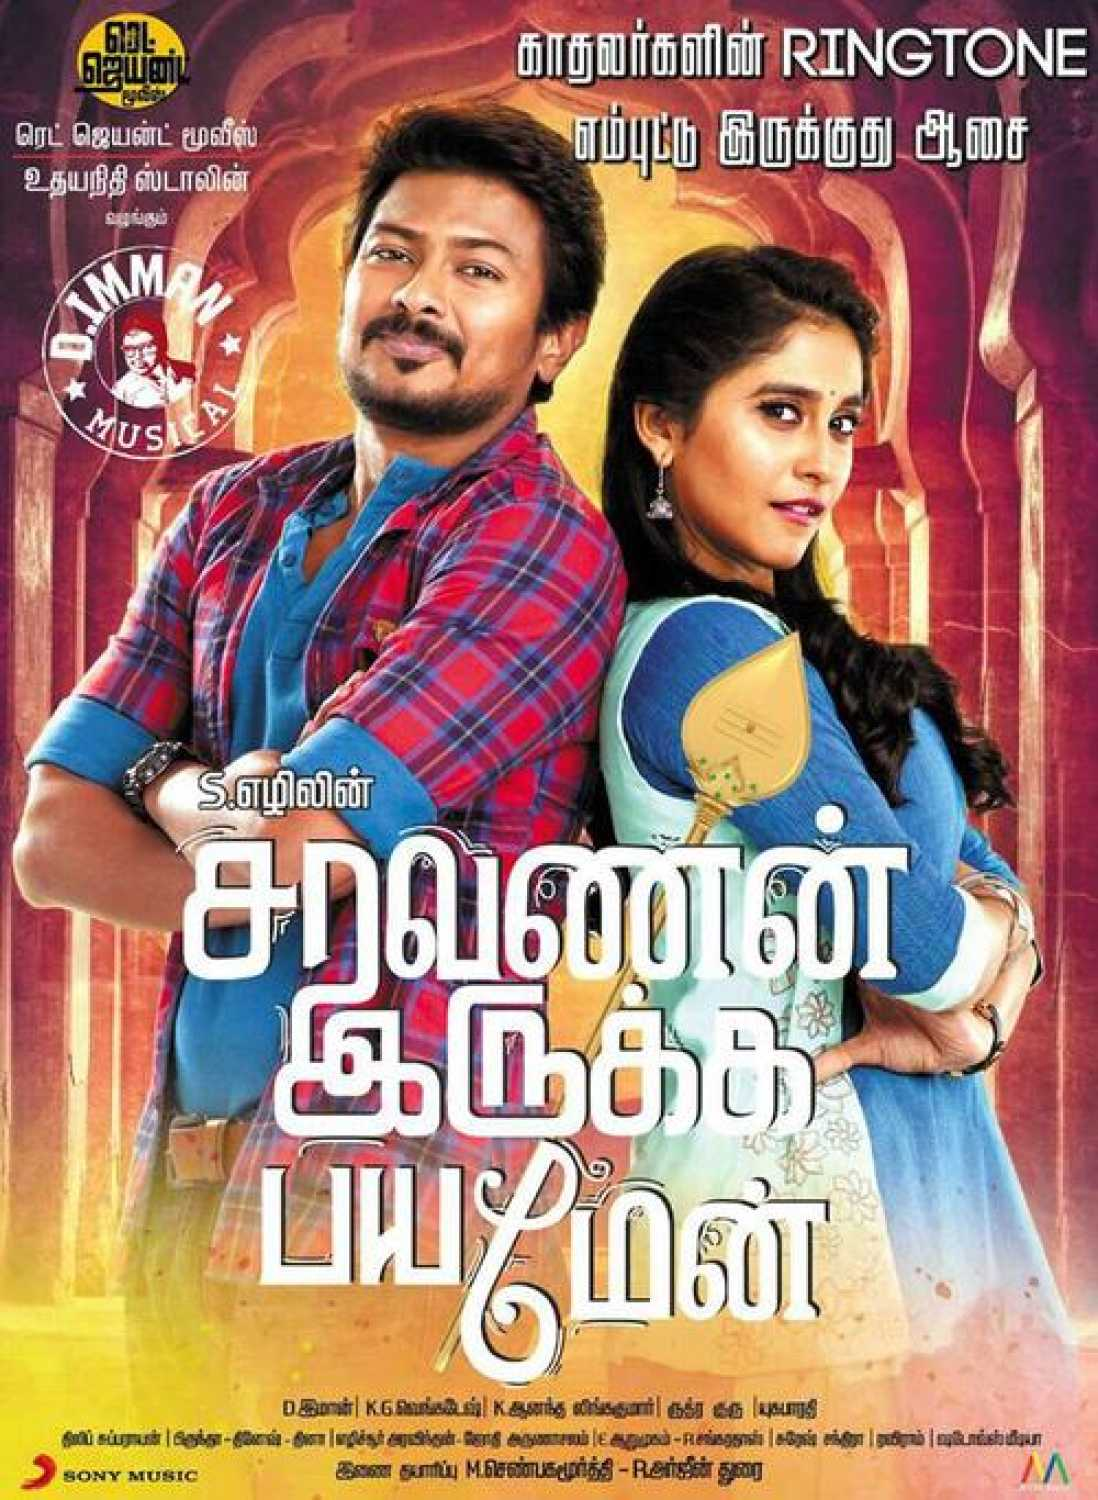 Saravanan Irukka Bayamaen 2017 Hindi ORG Dual Audio 1080p UNCUT HDRip 2.41GB Download